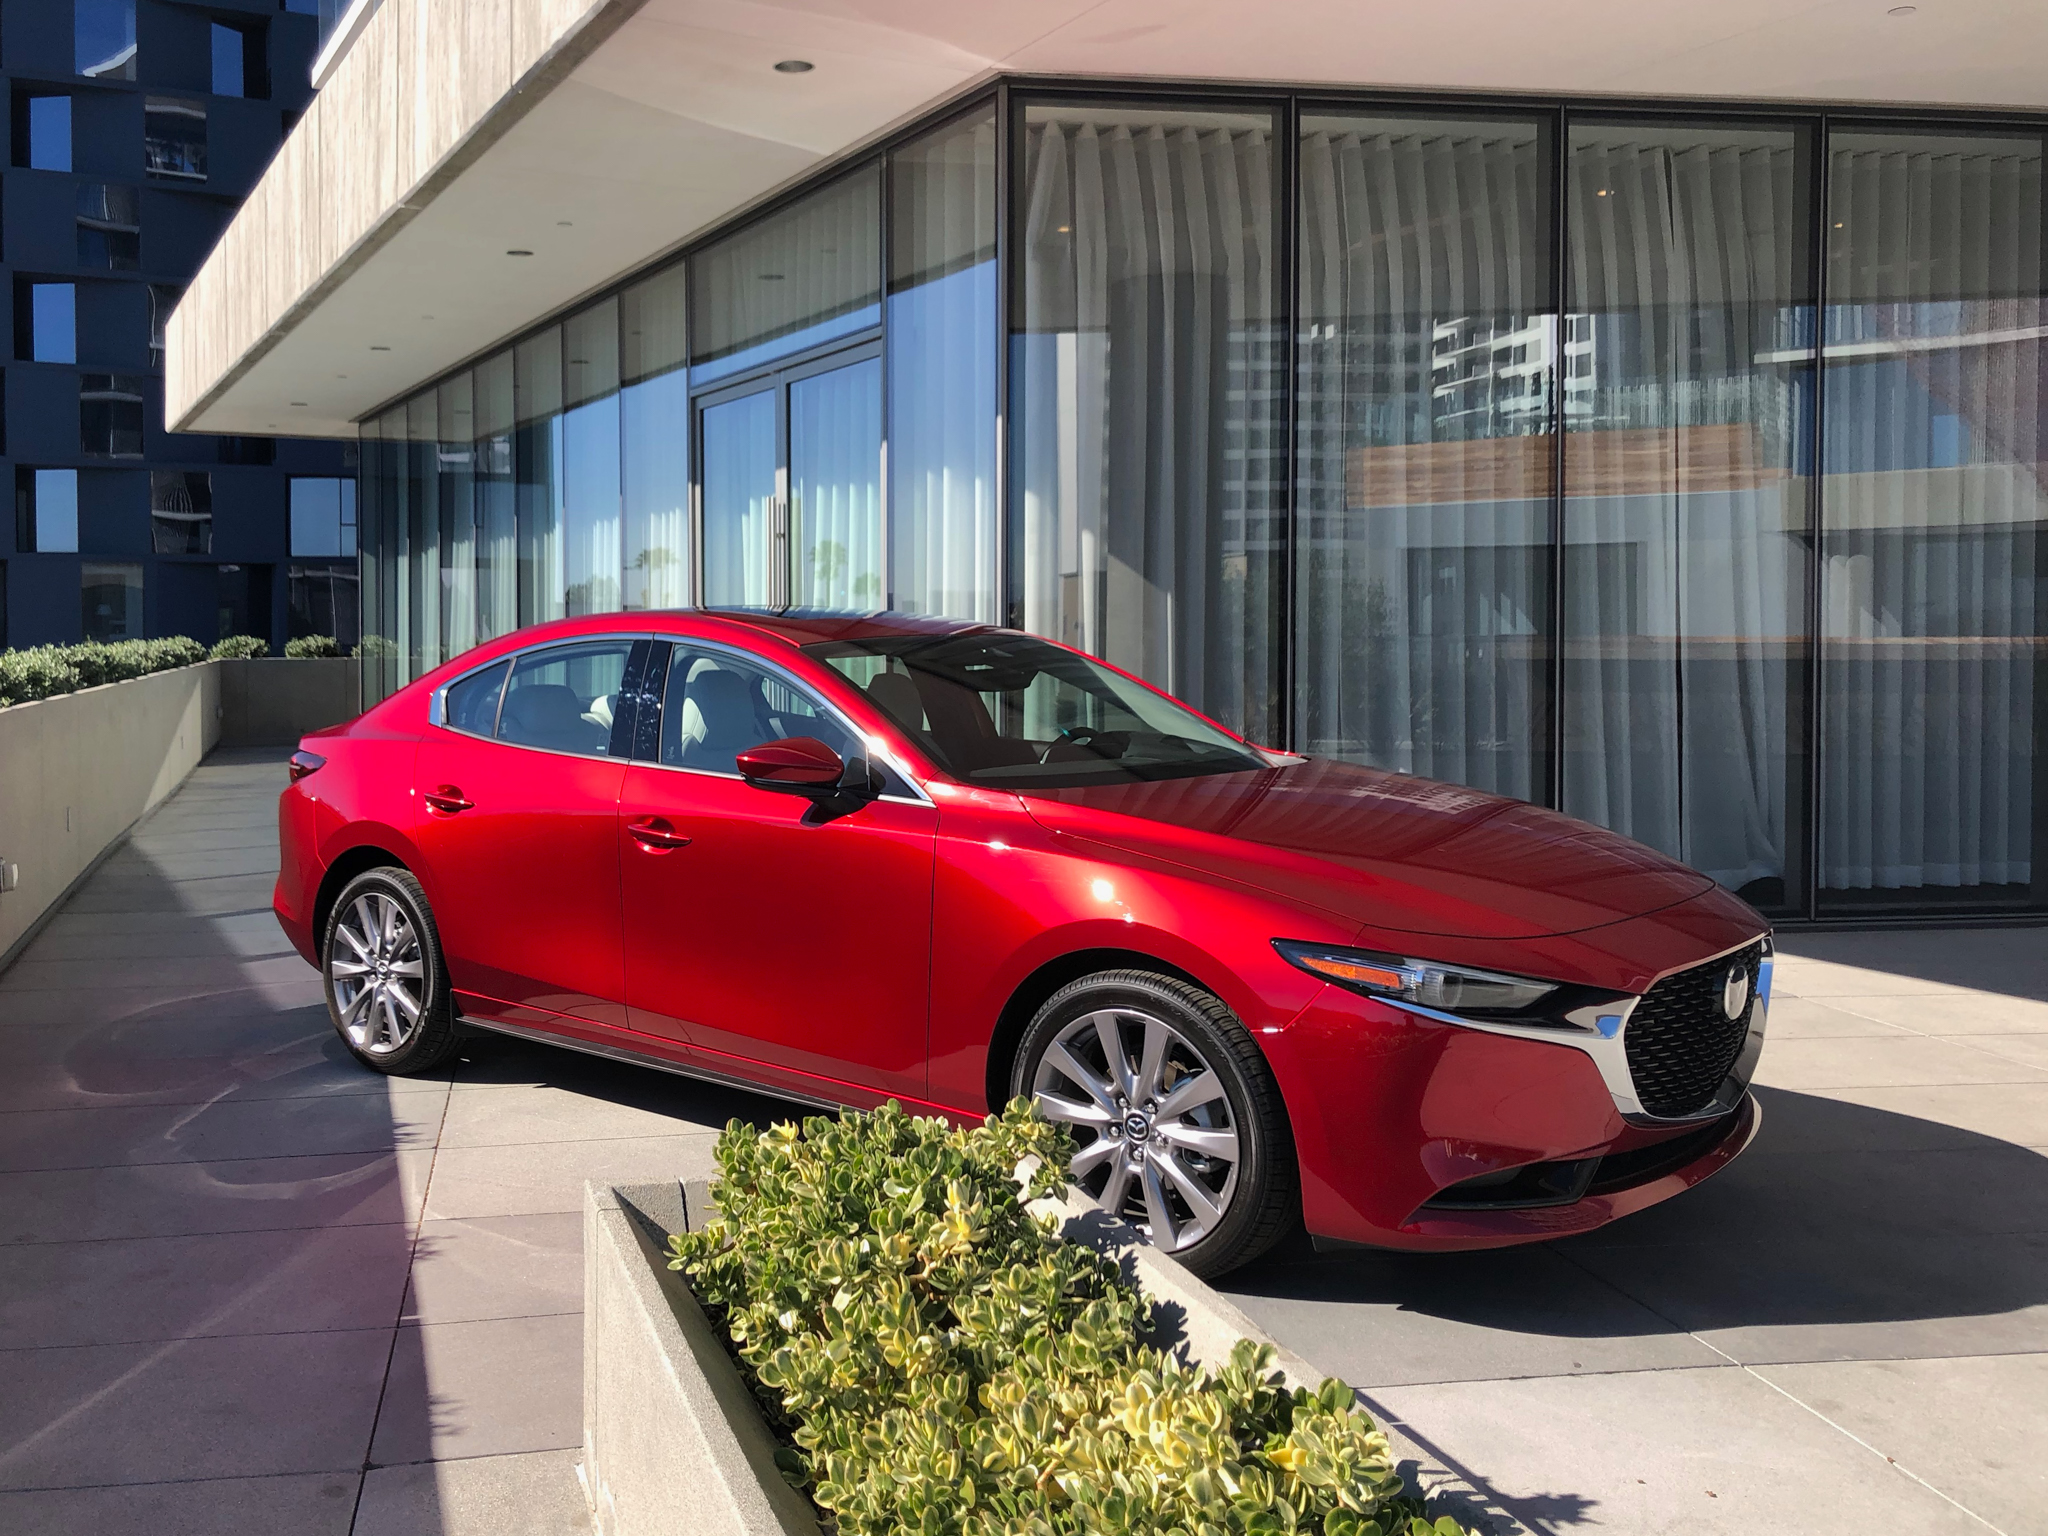 2019 Mazda 3 Hatchback, Redesign, Release Date, & Price >> The All New 2019 Mazda 3 Punches Far Above Its Weight For Under